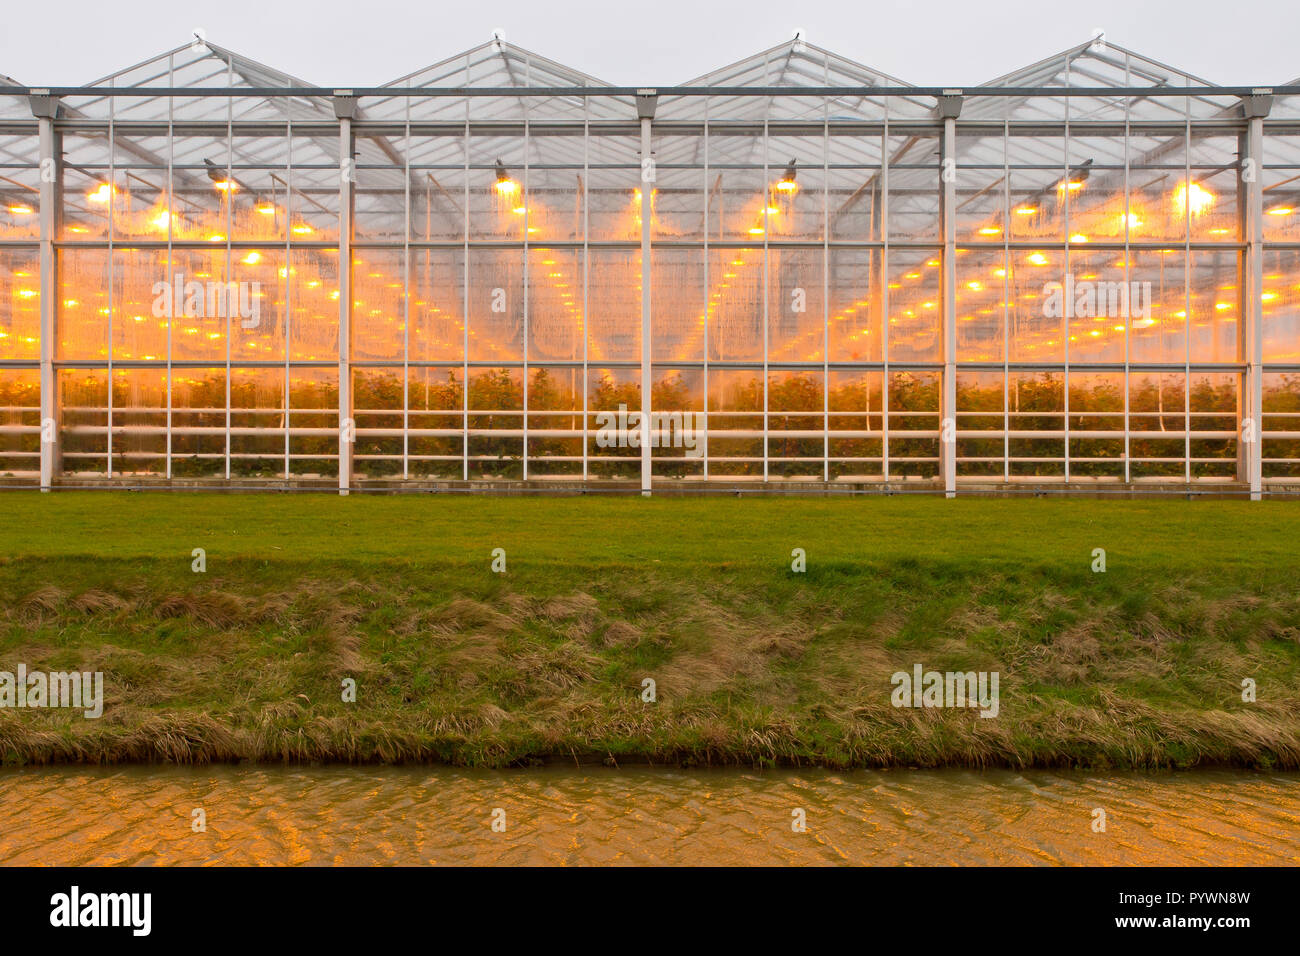 Warm light through moist glass of a giant commercial glasshouse - Stock Image